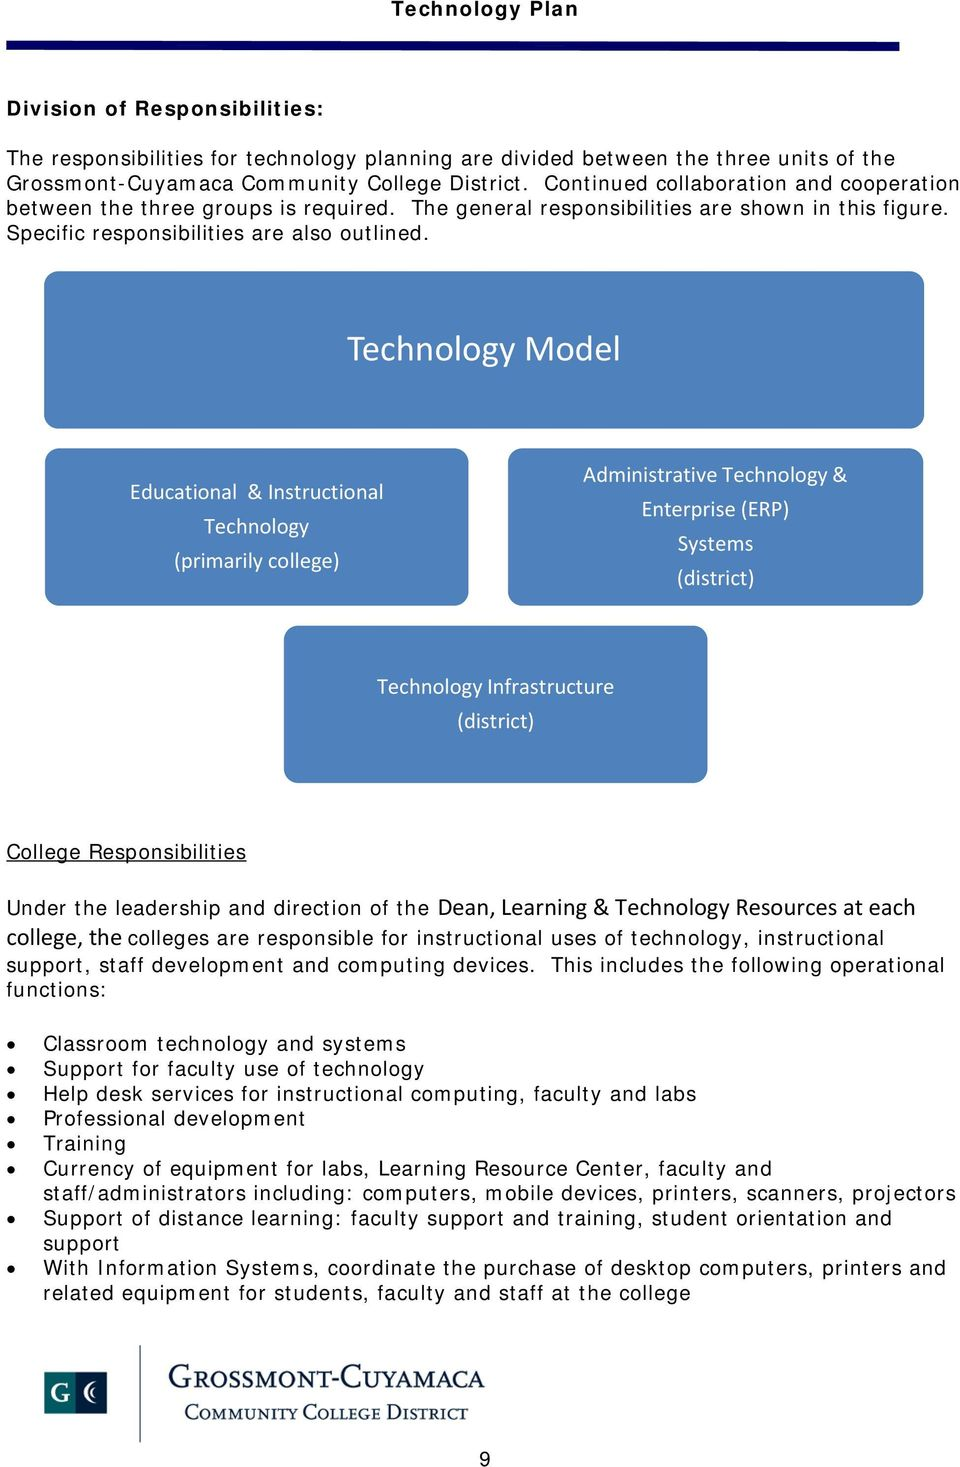 Technology Model Educational & Instructional Technology (primarily college) Administrative Technology & Enterprise (ERP) Systems (district) Technology Infrastructure (district) College